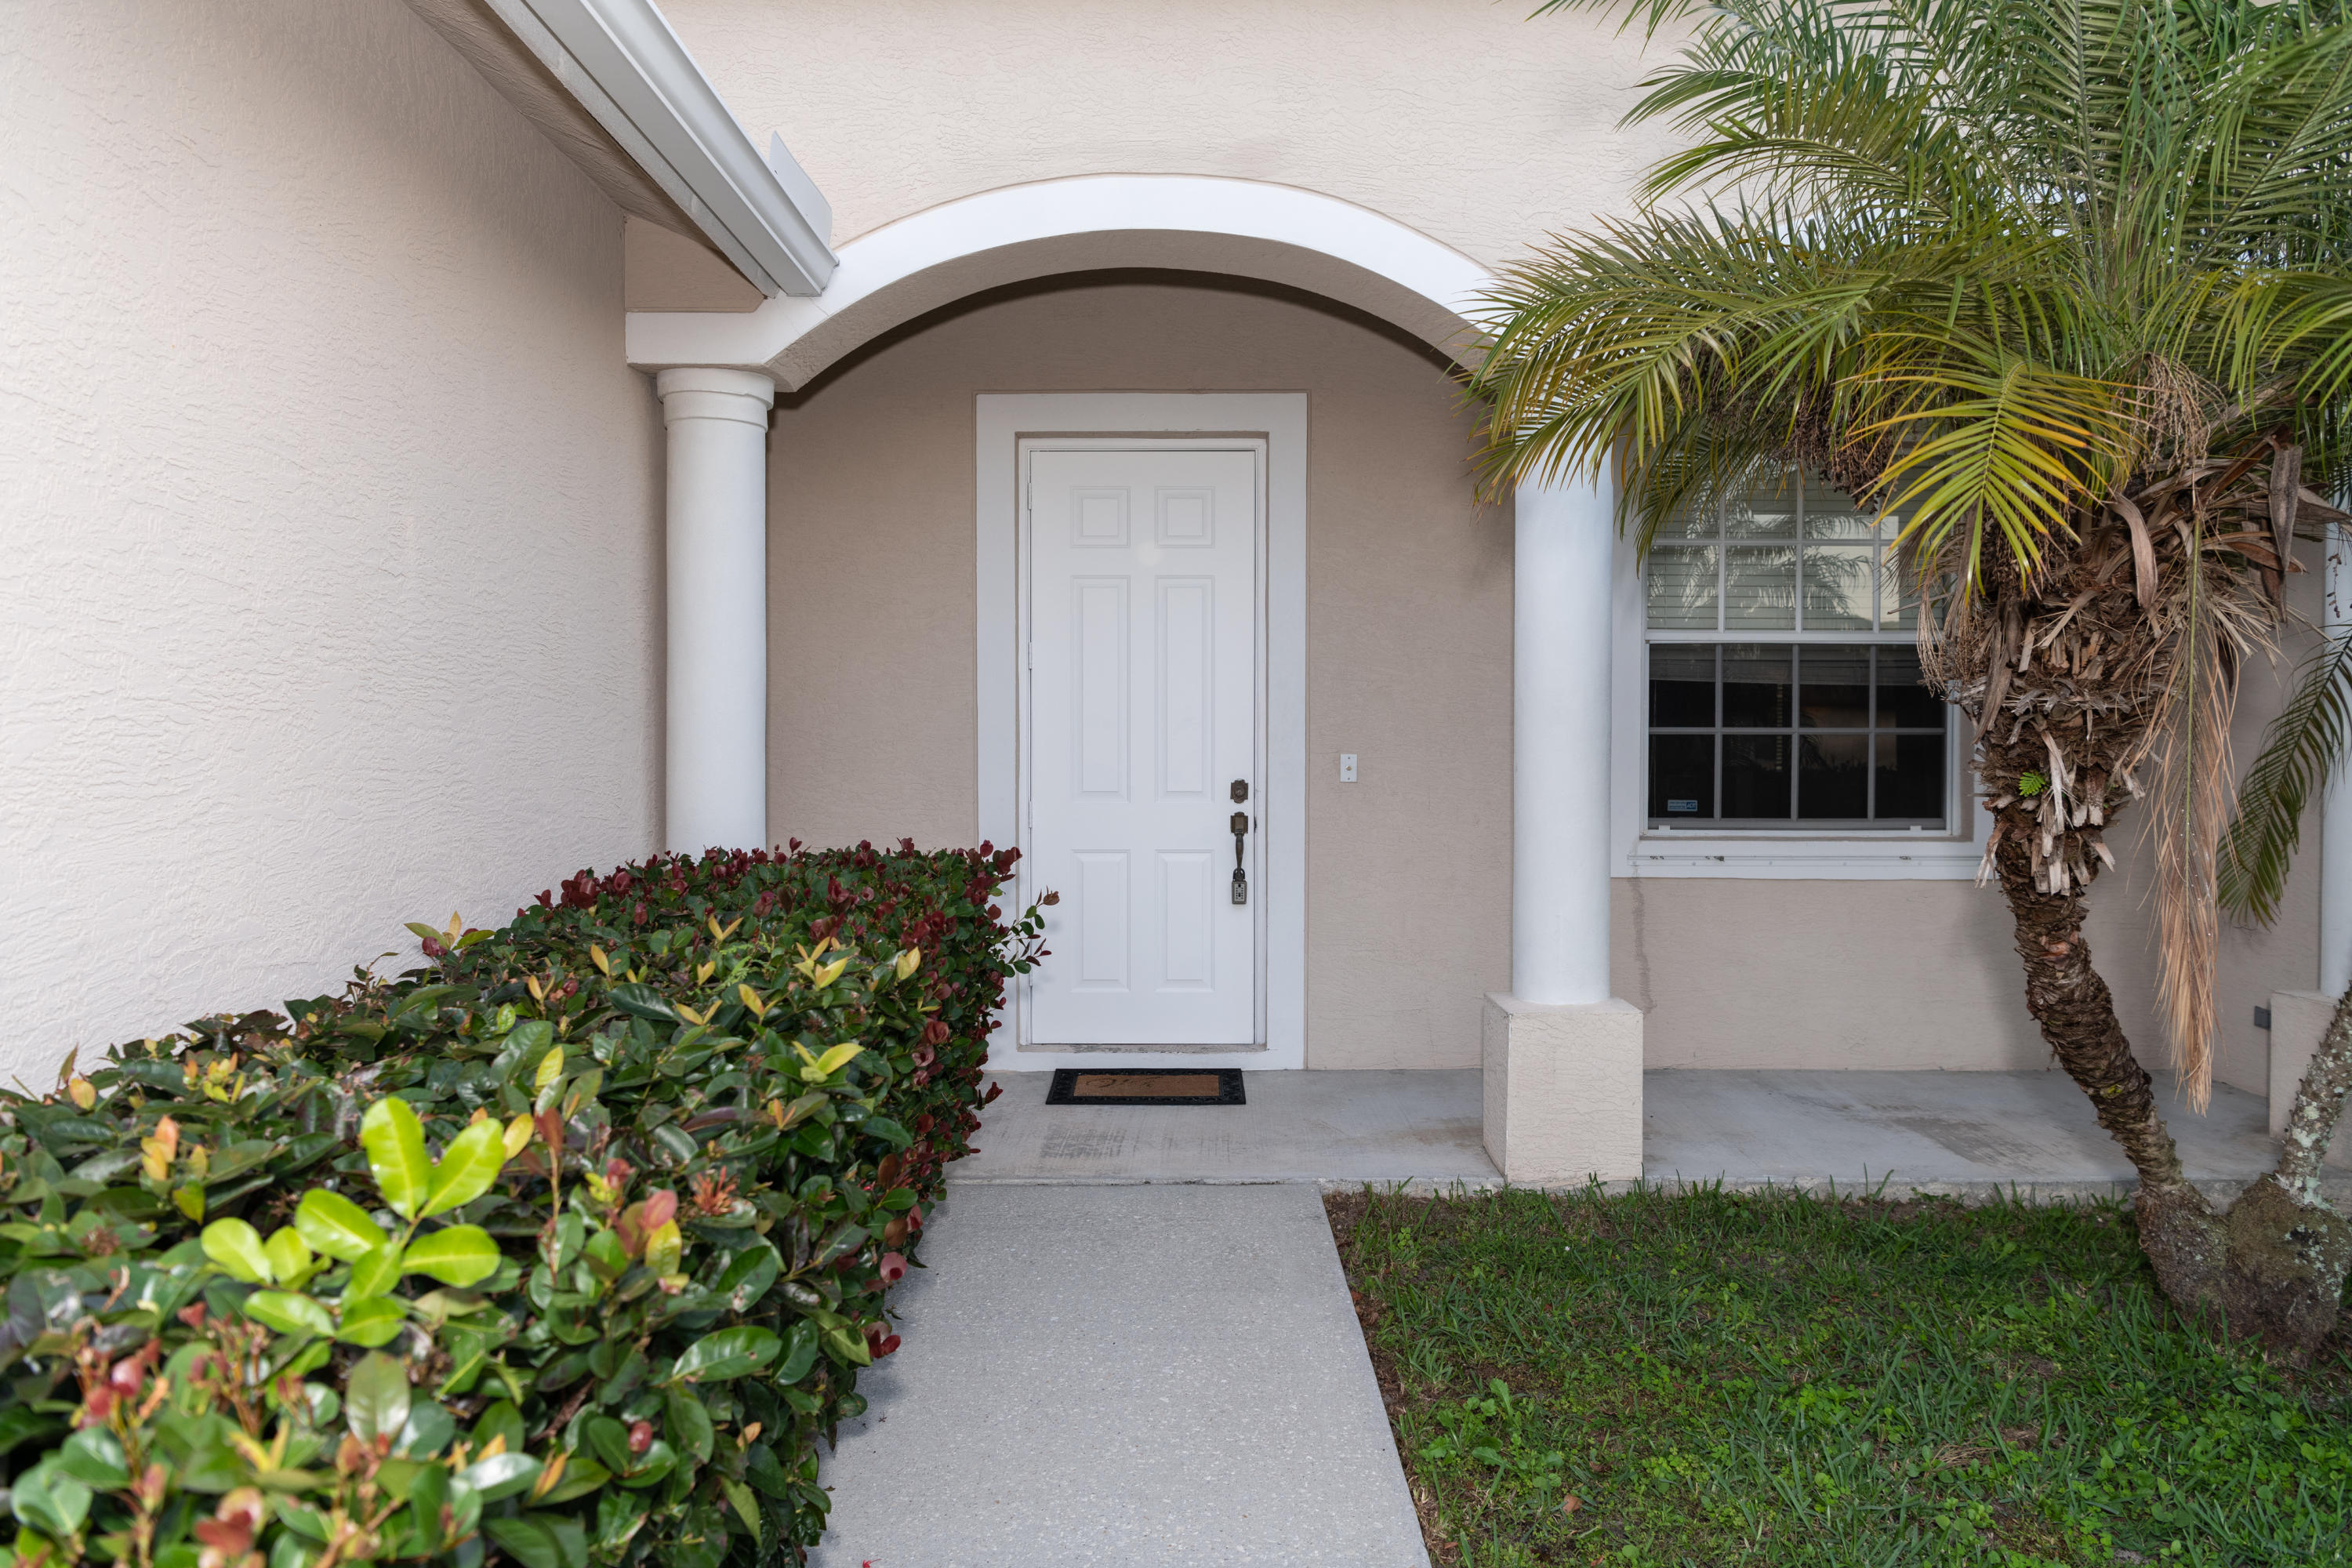 PORT ST. LUCIE REALTY